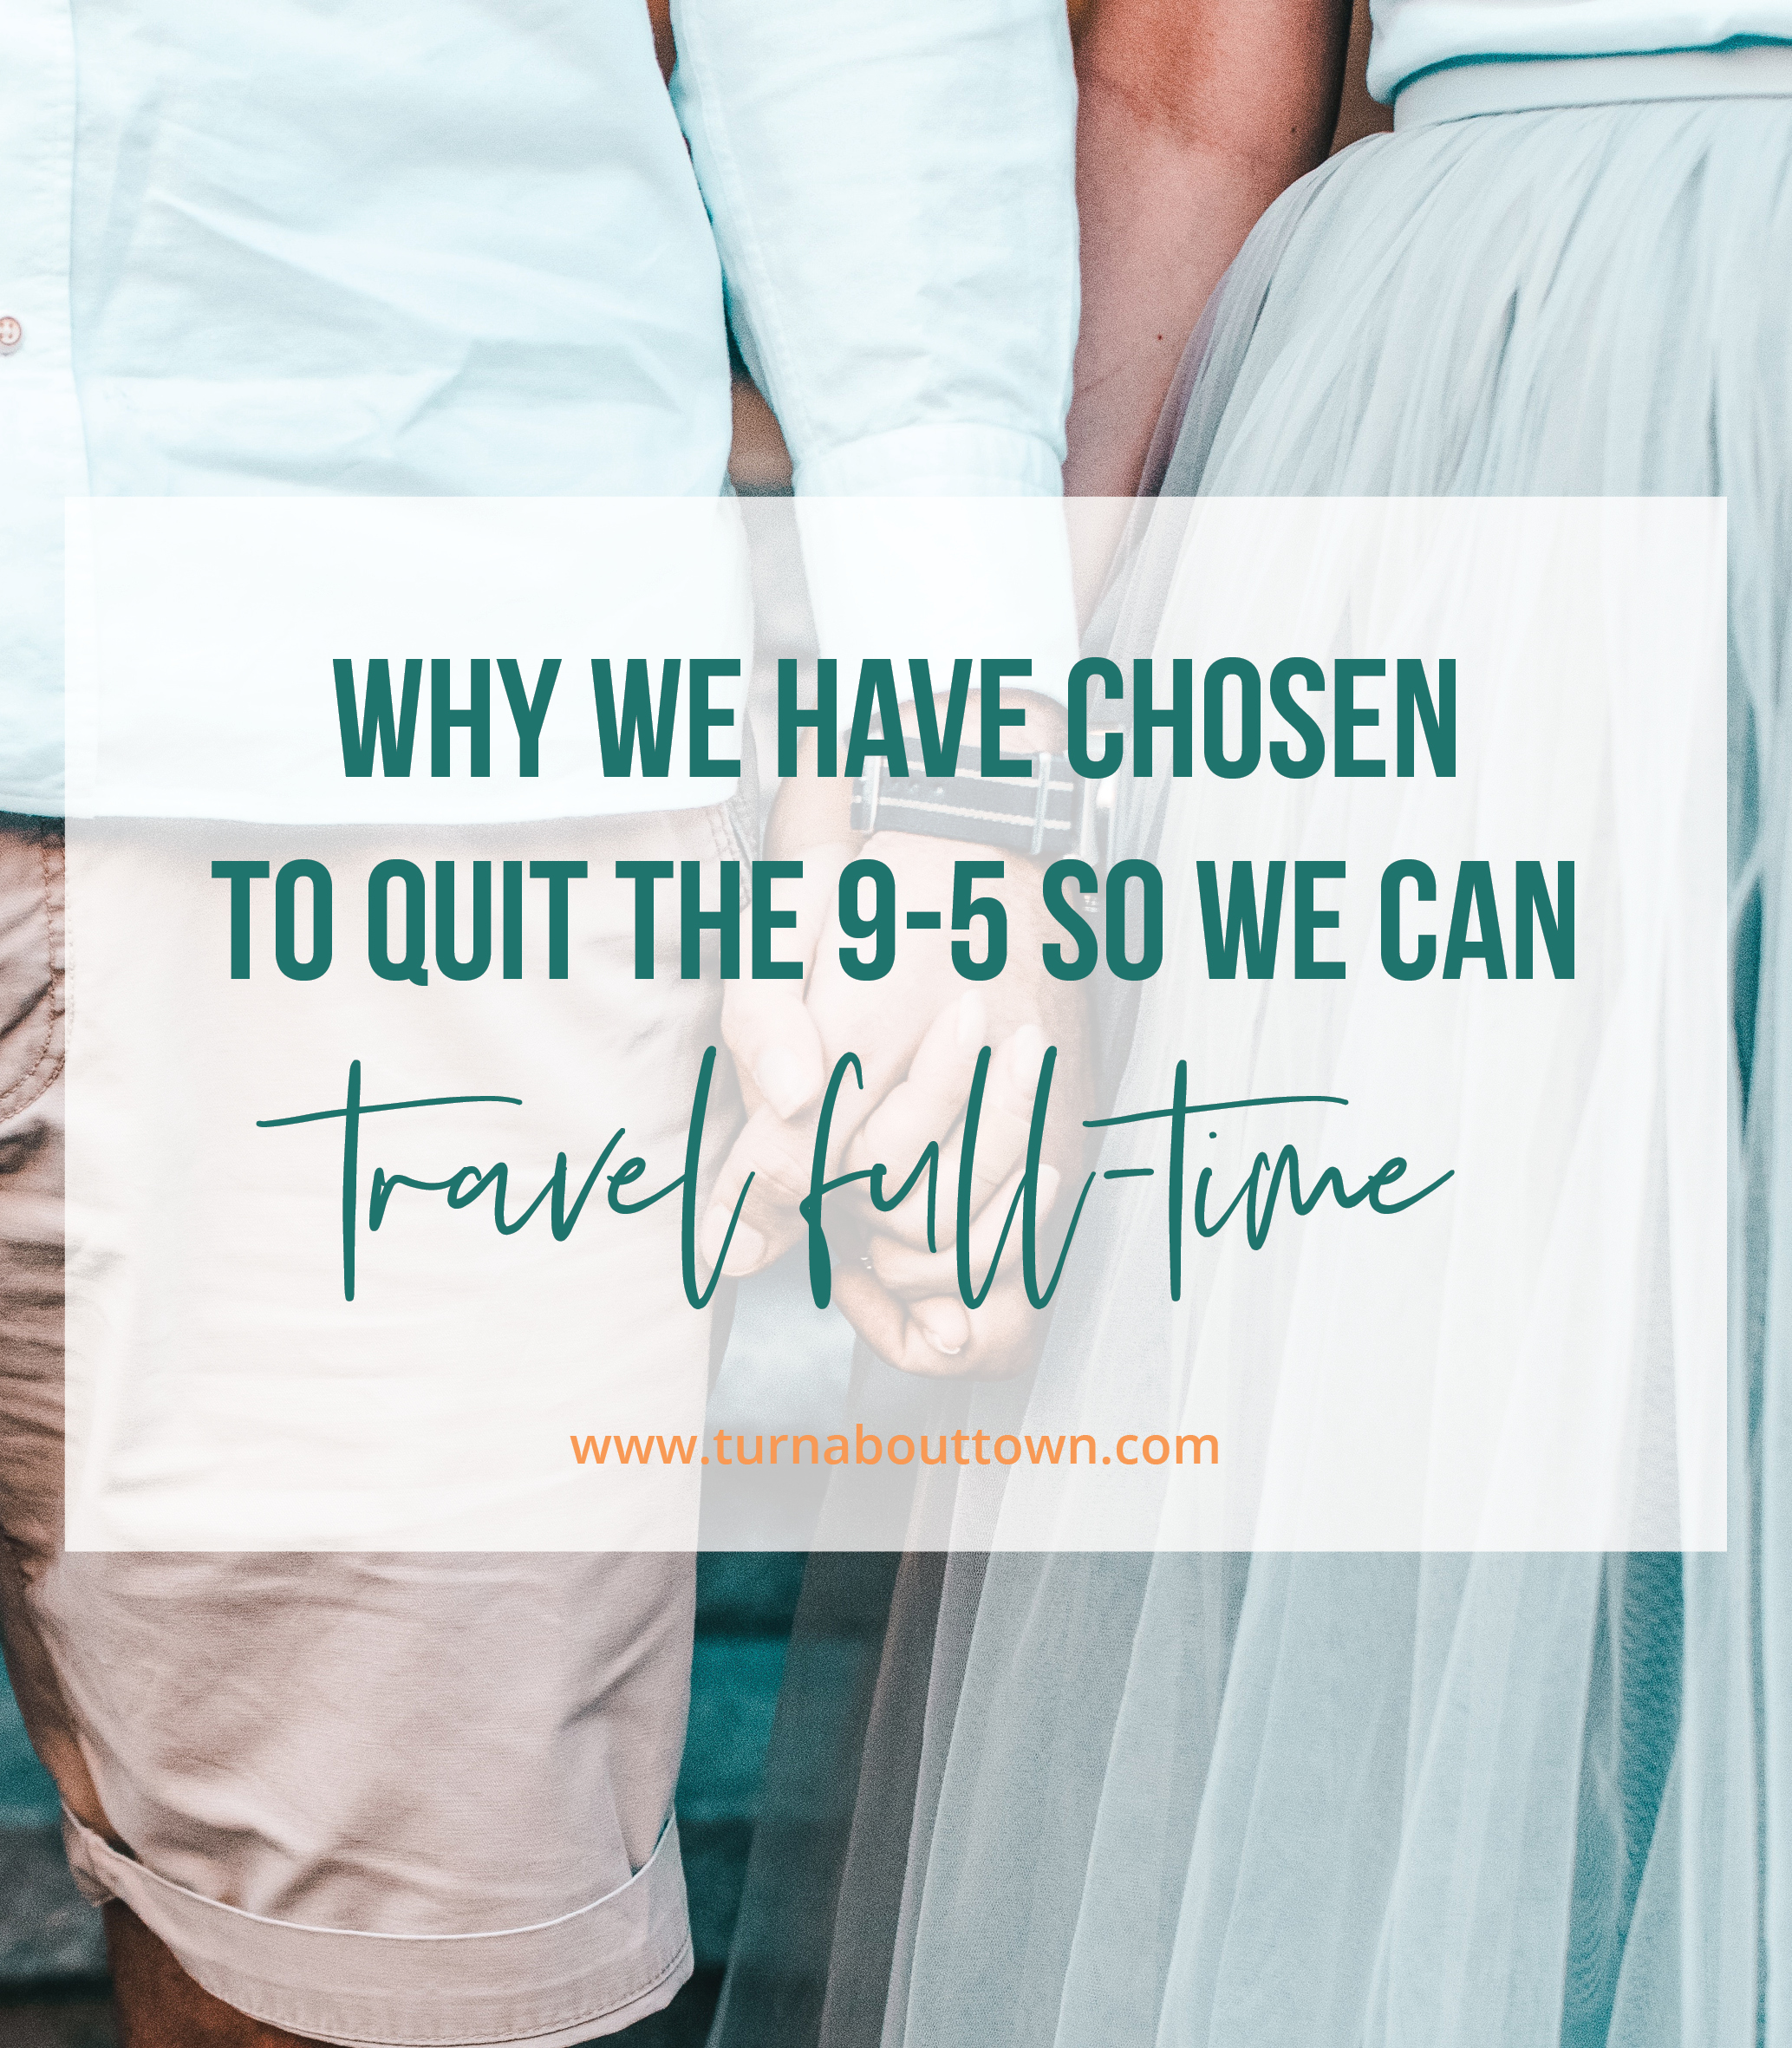 Why we have chosen to quite the 9-5 so we can travel full-time